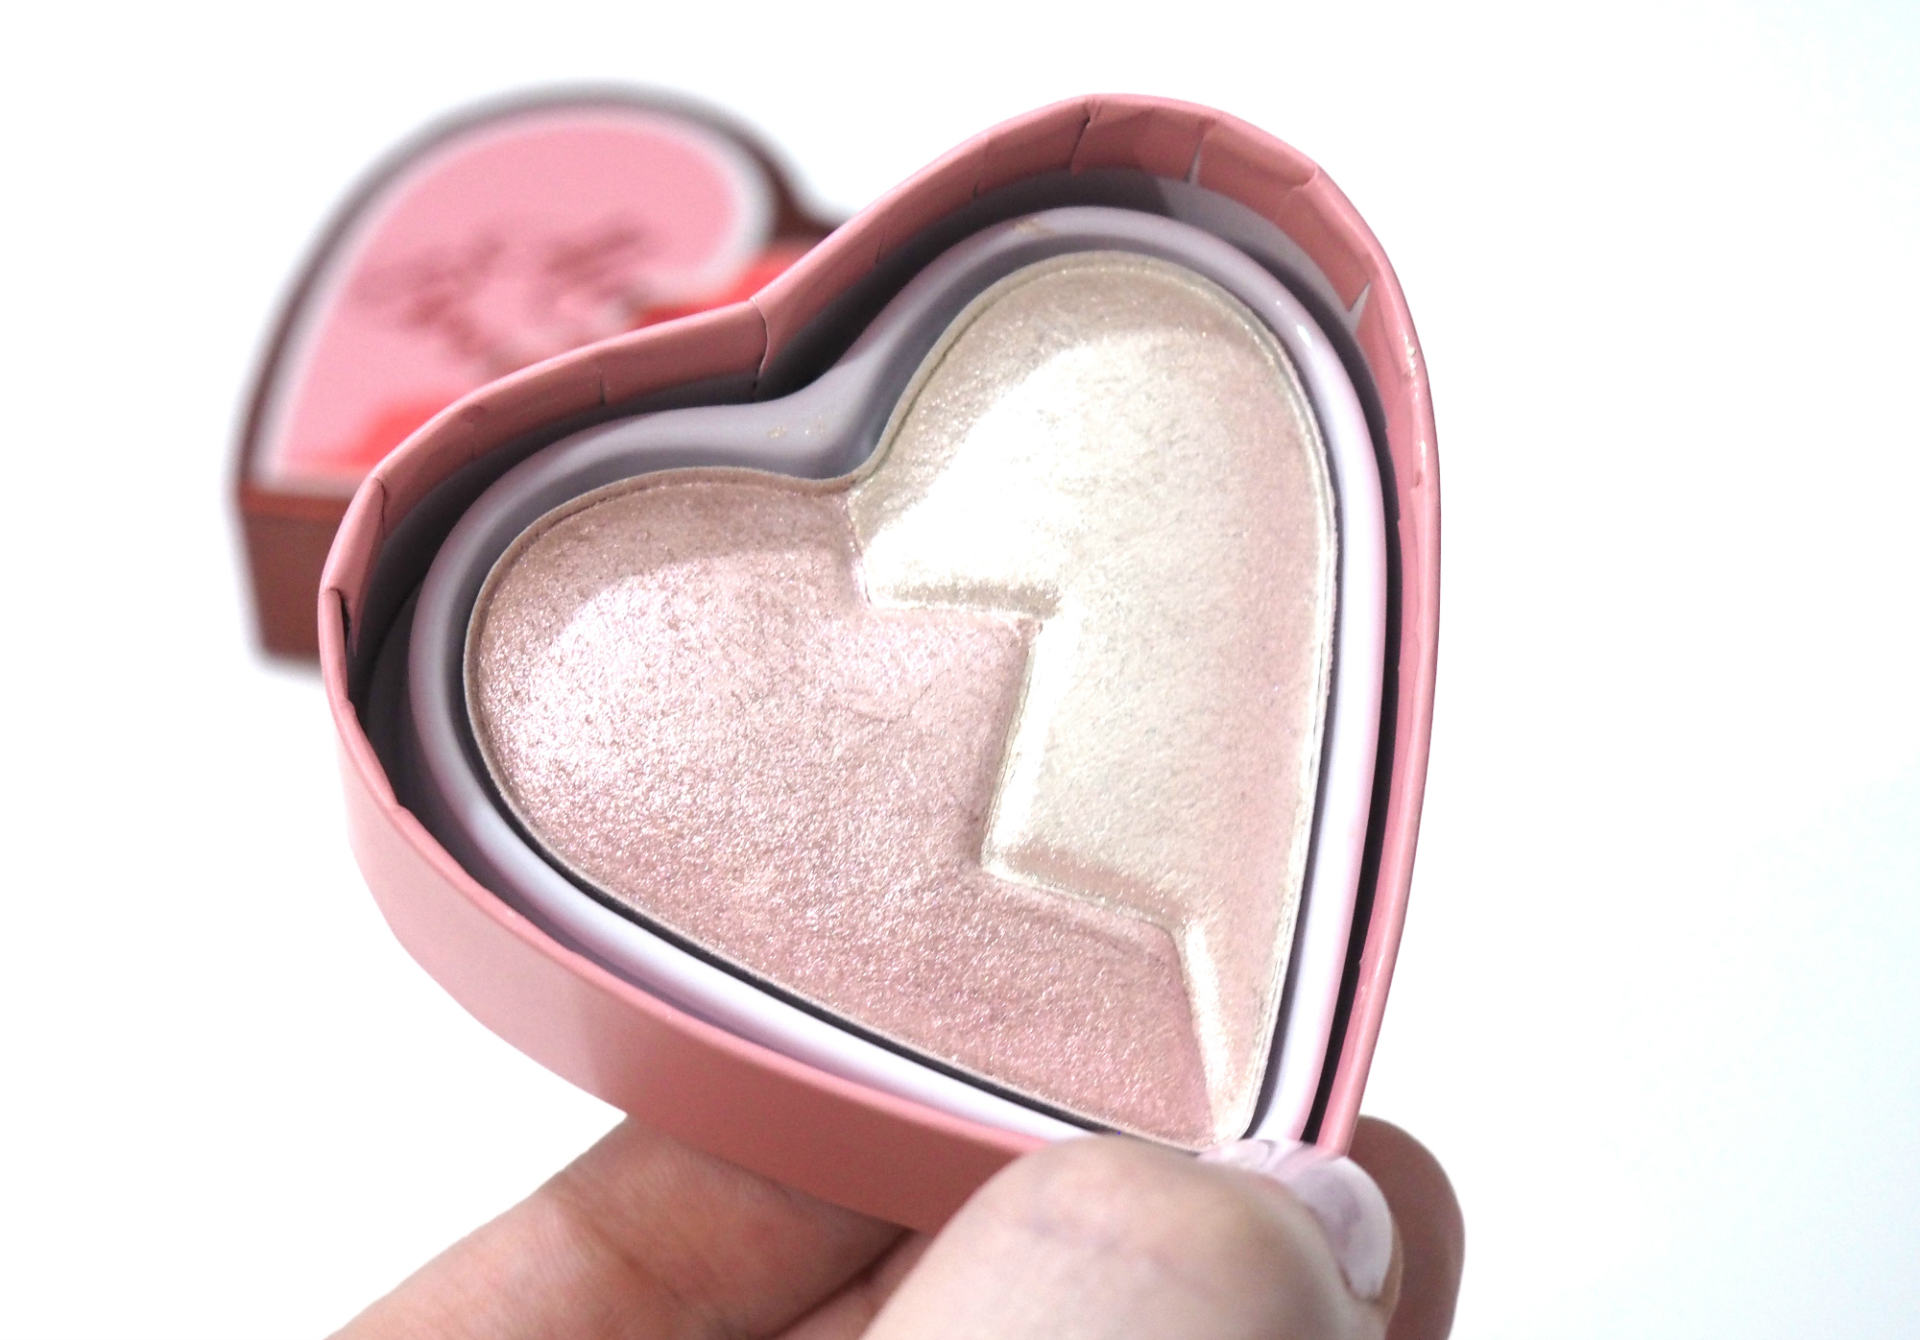 I Heart Revolution Heartbreakers Highlighter Review and Swatches